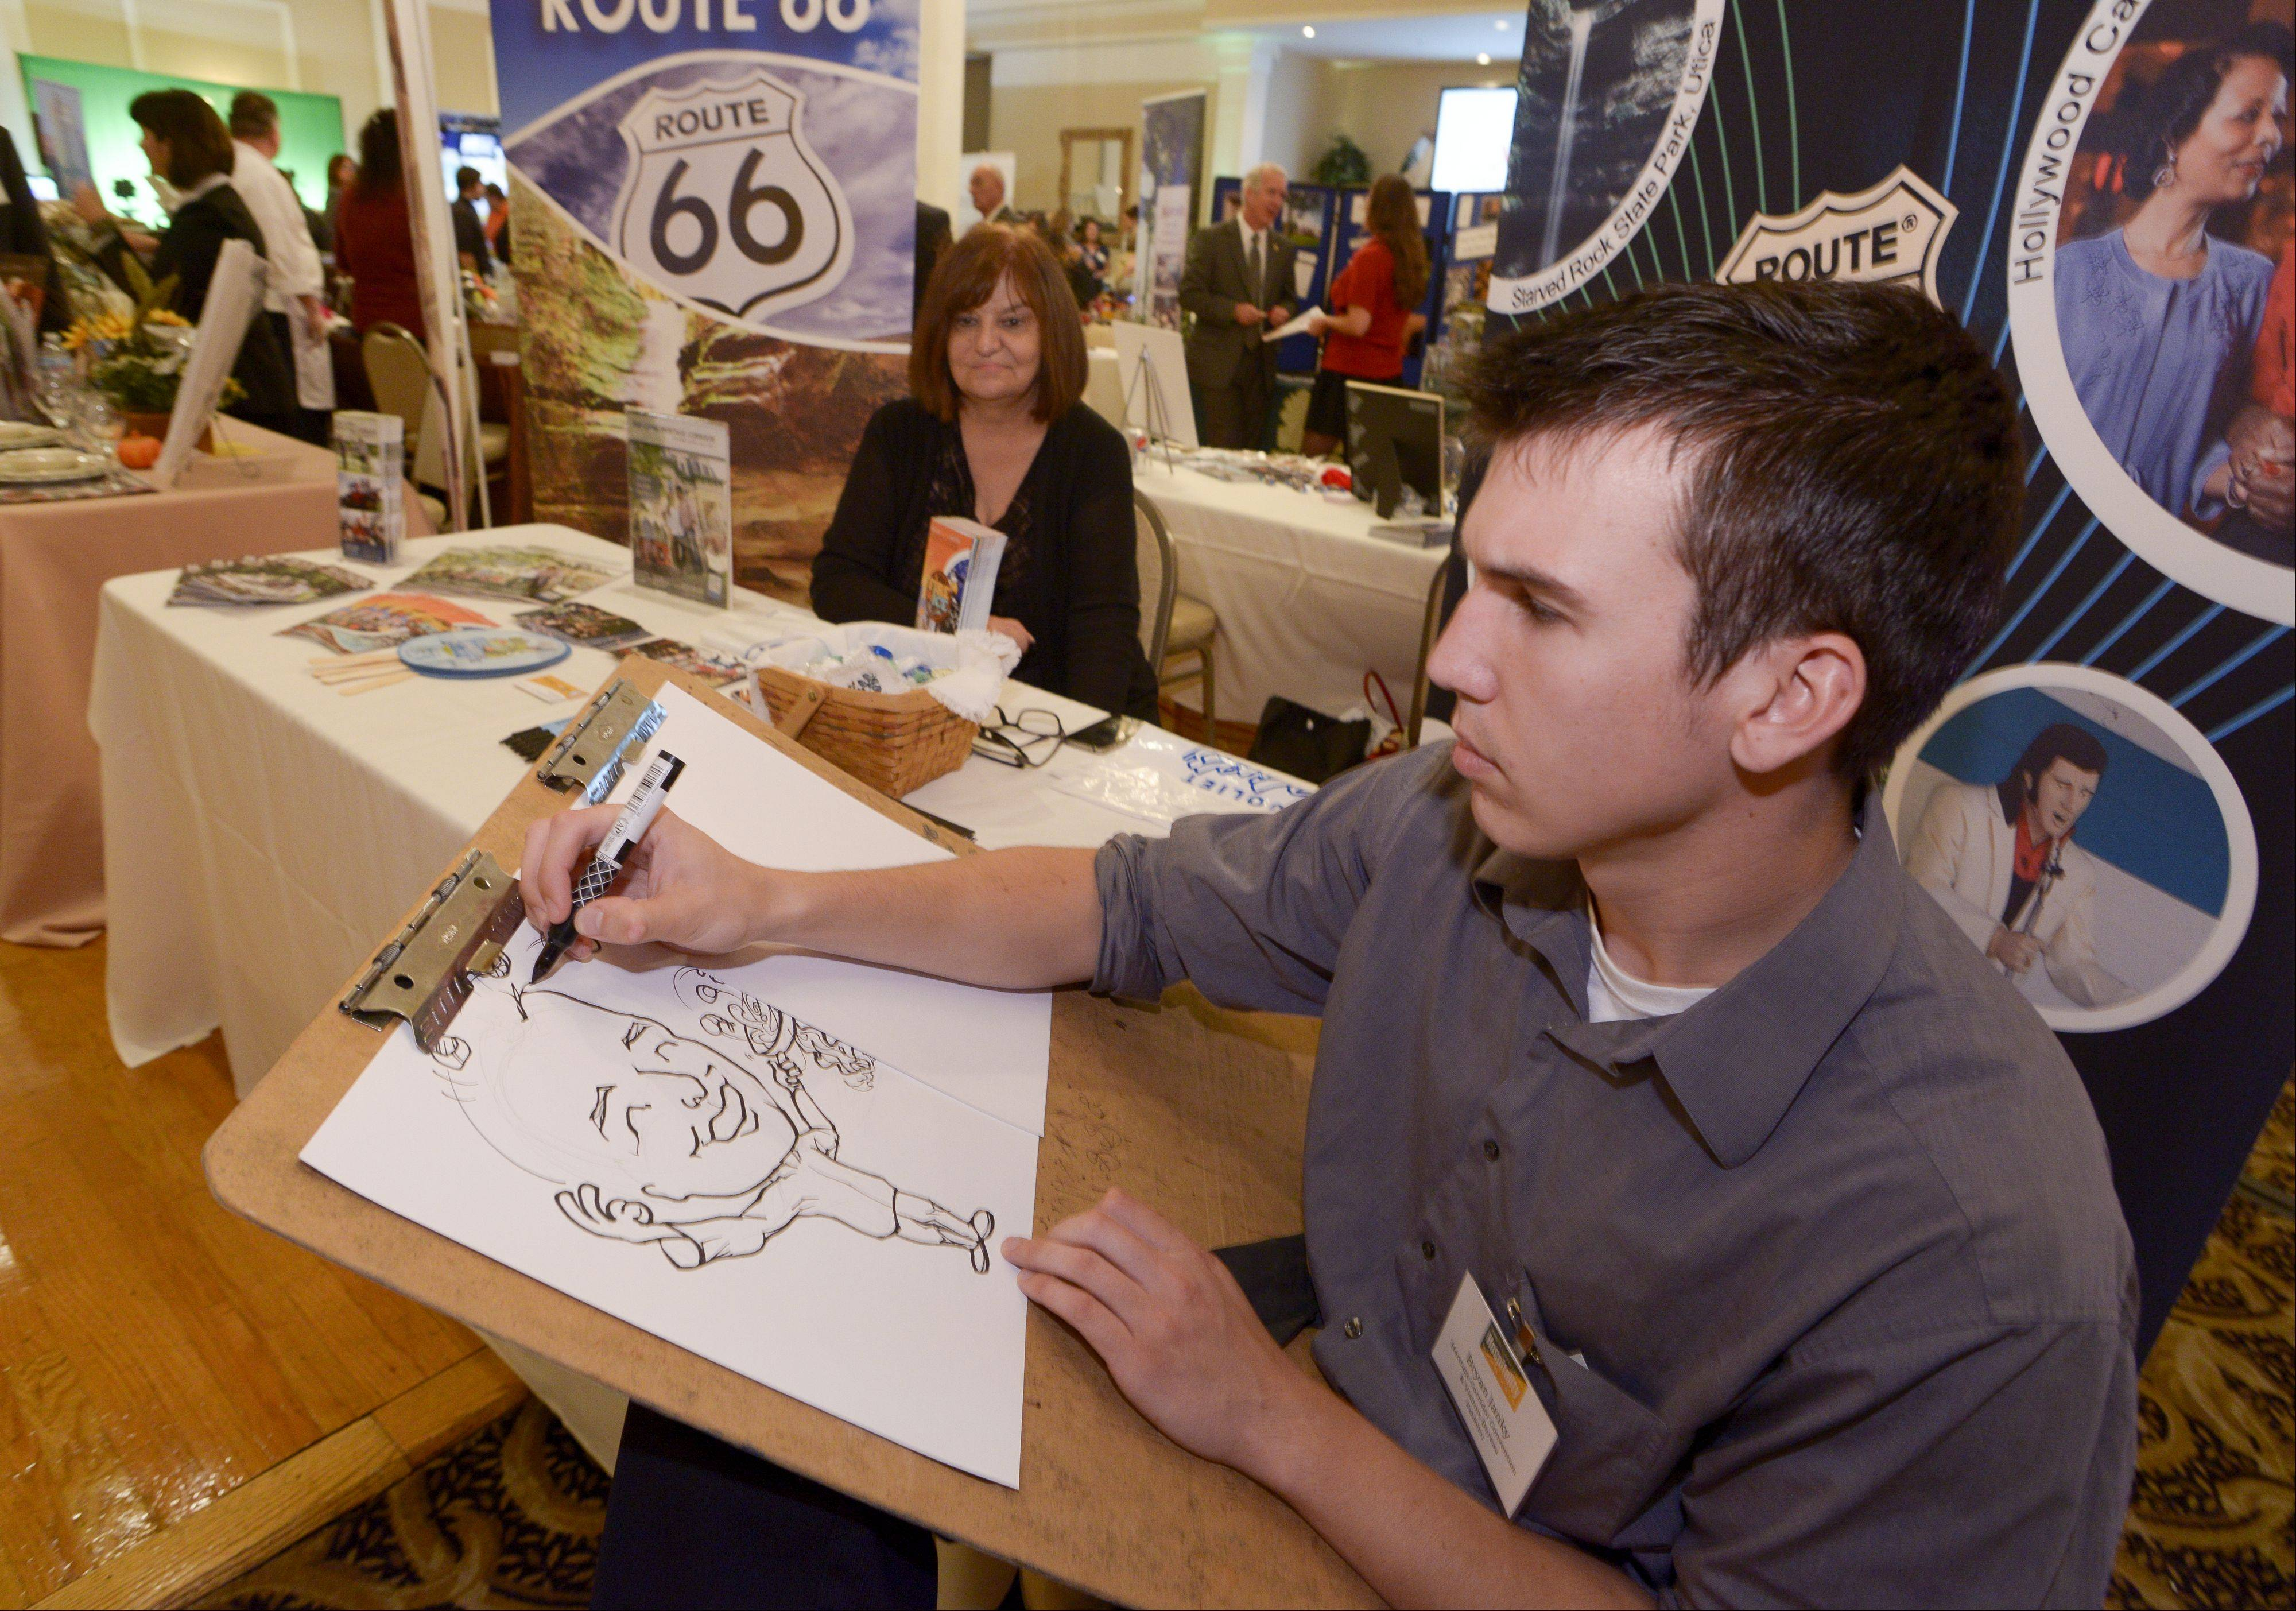 Bryan Janky draws a caricature during the Daily Herald Business Ledger's hospitality Expo at Abbington Distinctive Banquets in Glen Ellyn, Thursday.